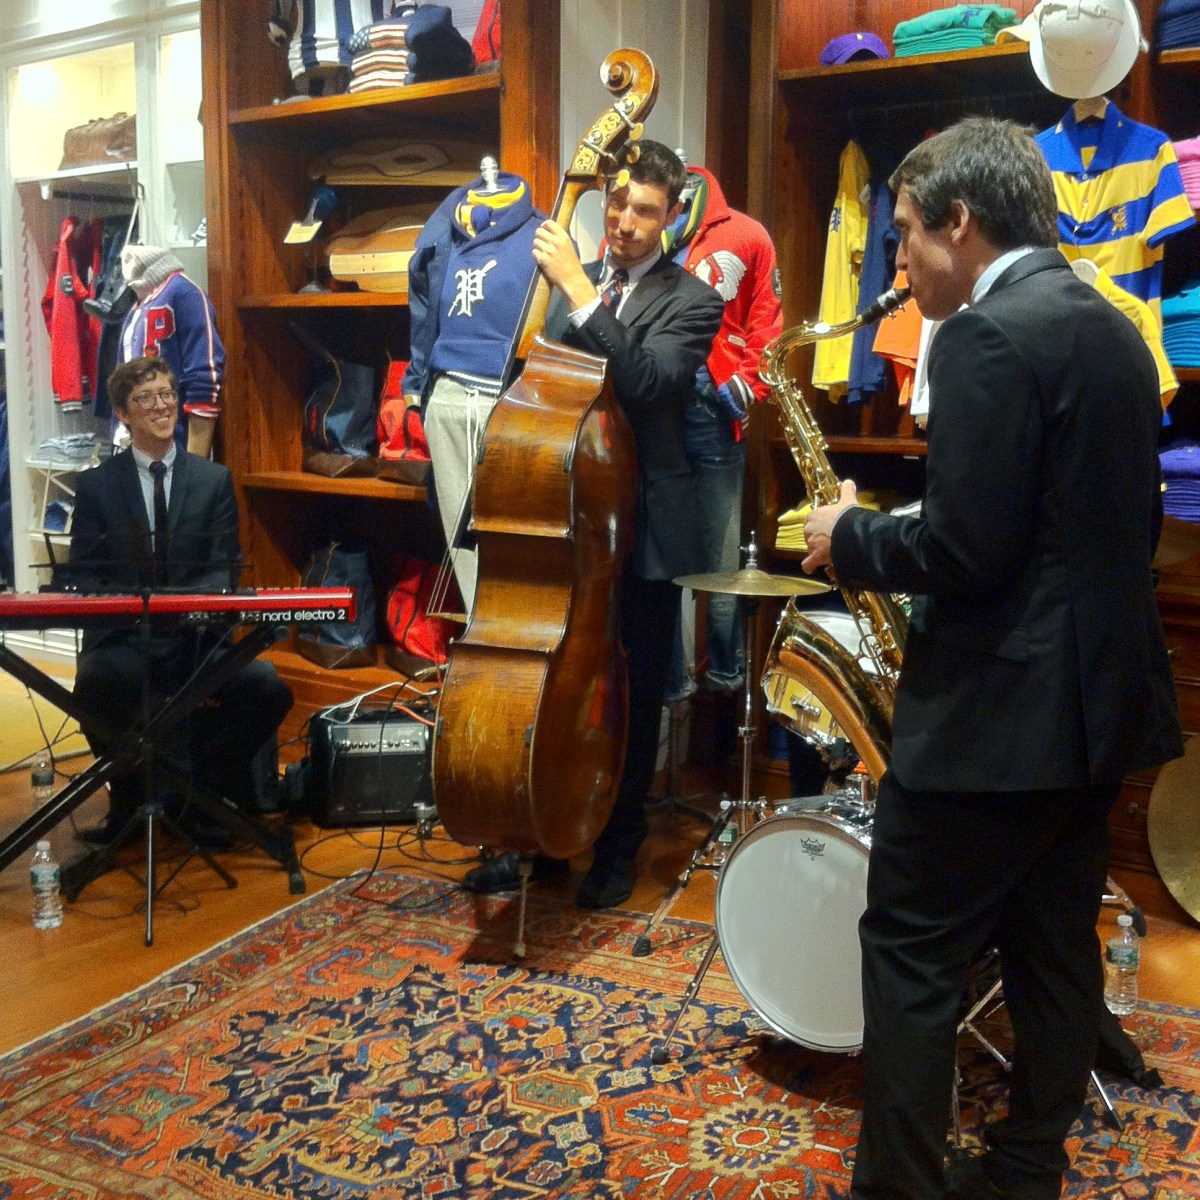 live jazz band, ralph lauren polo, rowing blazers, rowing